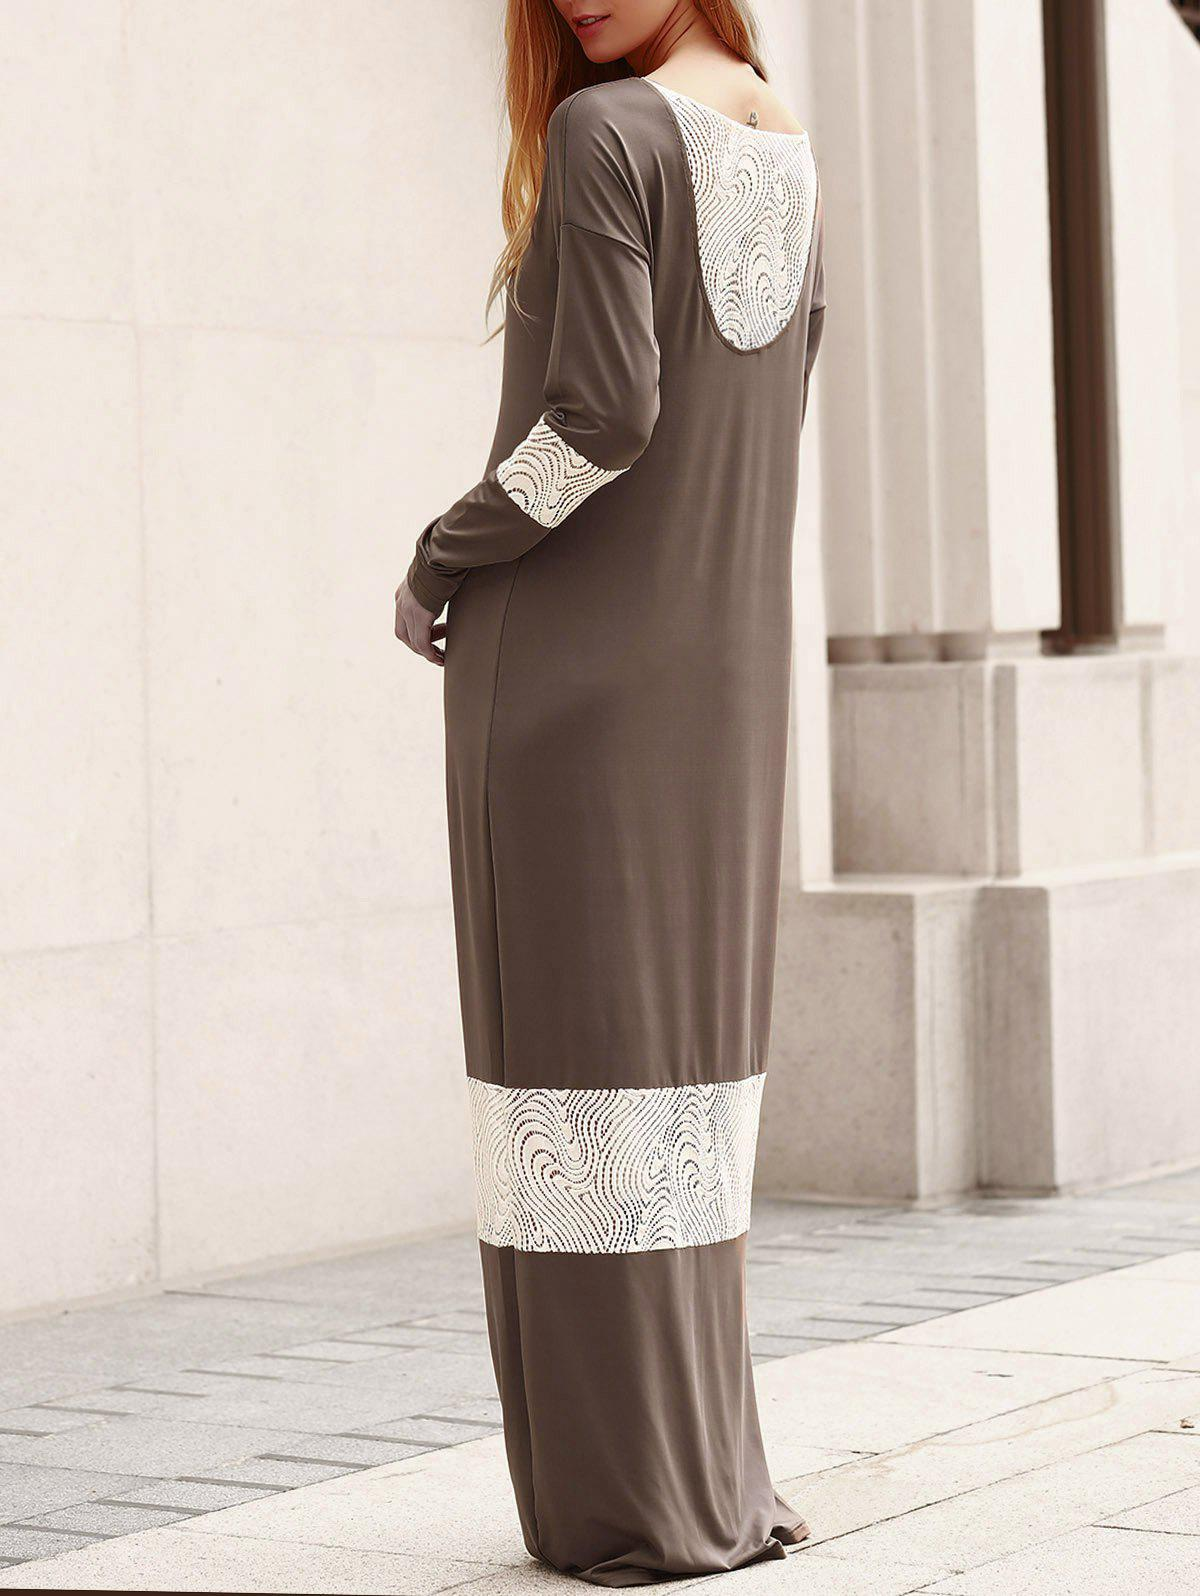 6391e13f6a44 Online Stylish Scoop Collar Long Sleeve Lace Splicing Loose-Fitting Dress  For Women